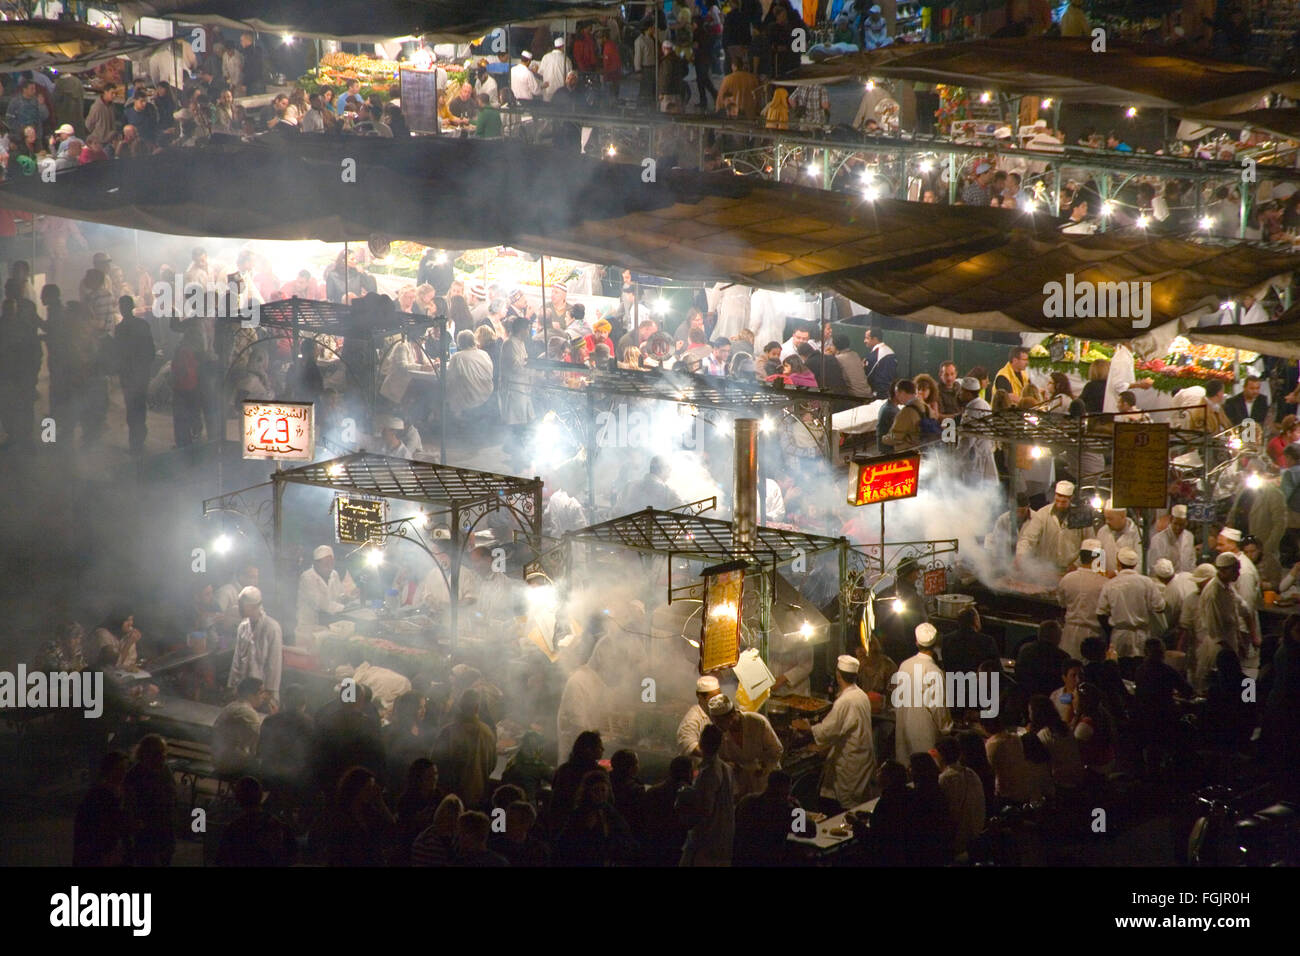 Eating out in Jemaa El Fna Square in Marrakech Morocco - Stock Image